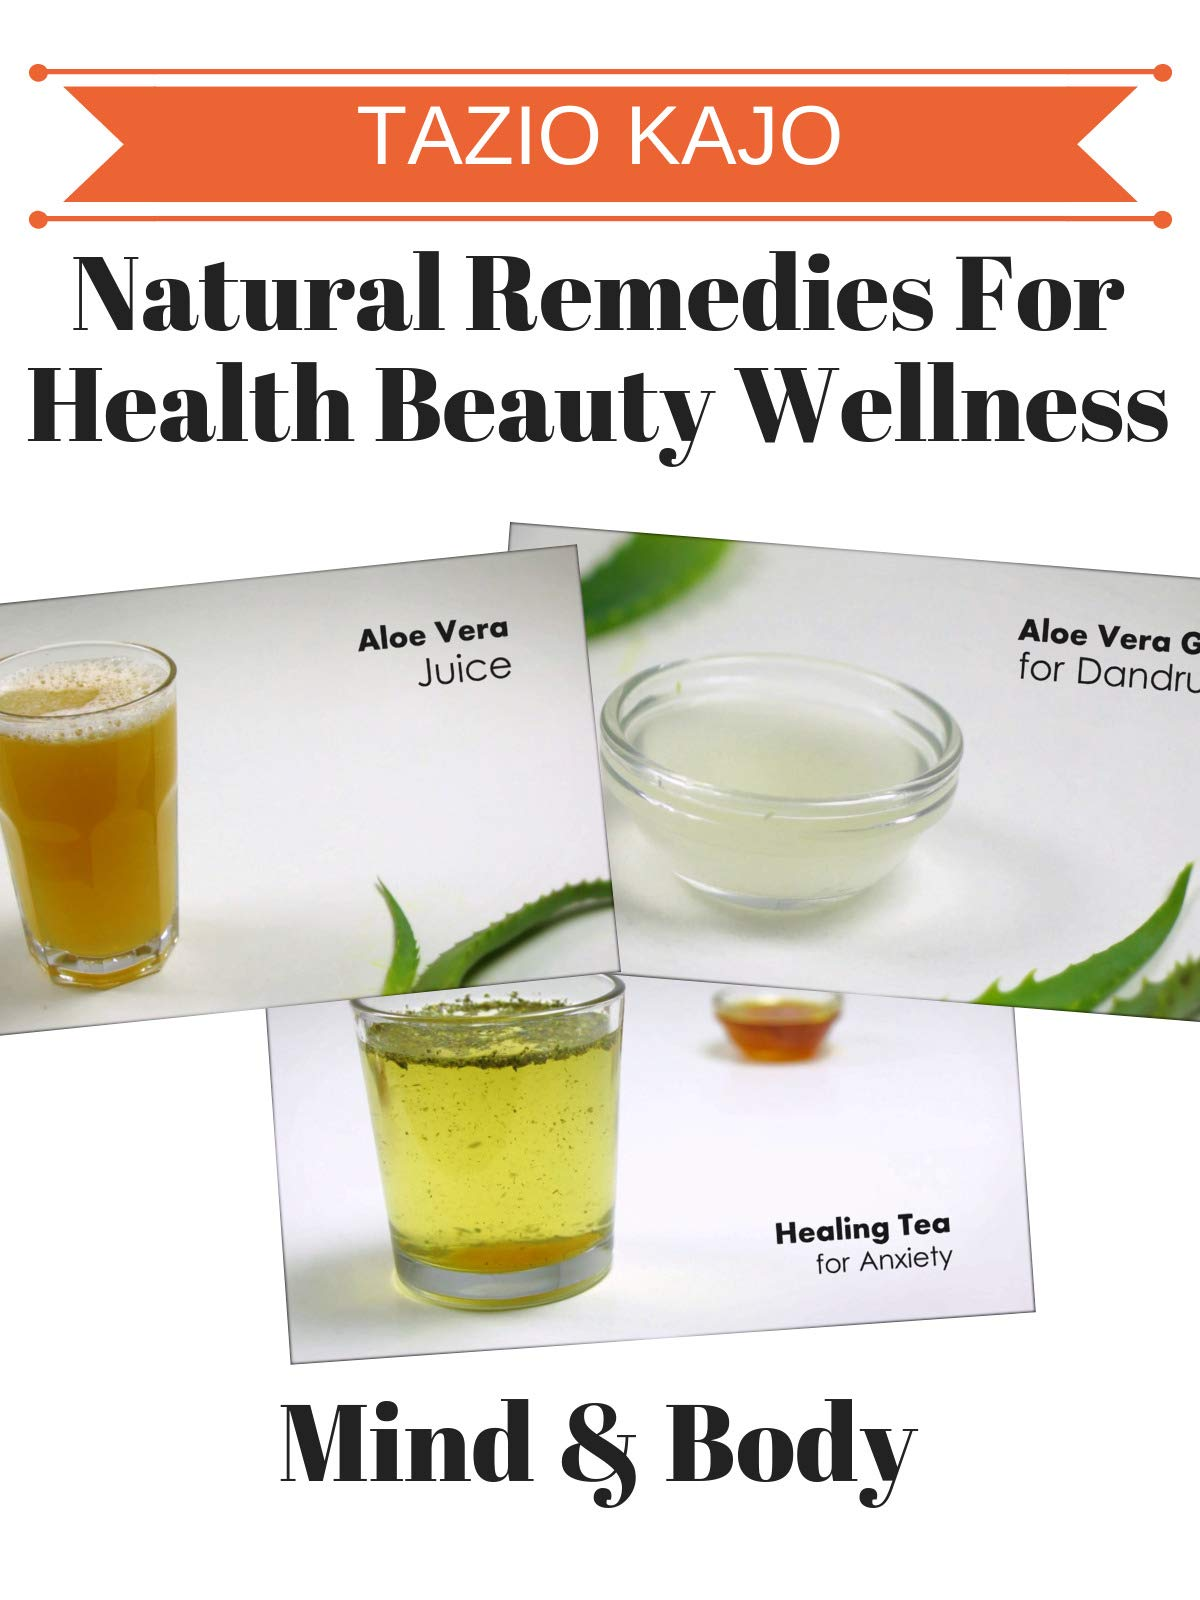 Natural Remedies For Health, Beauty & Wellness